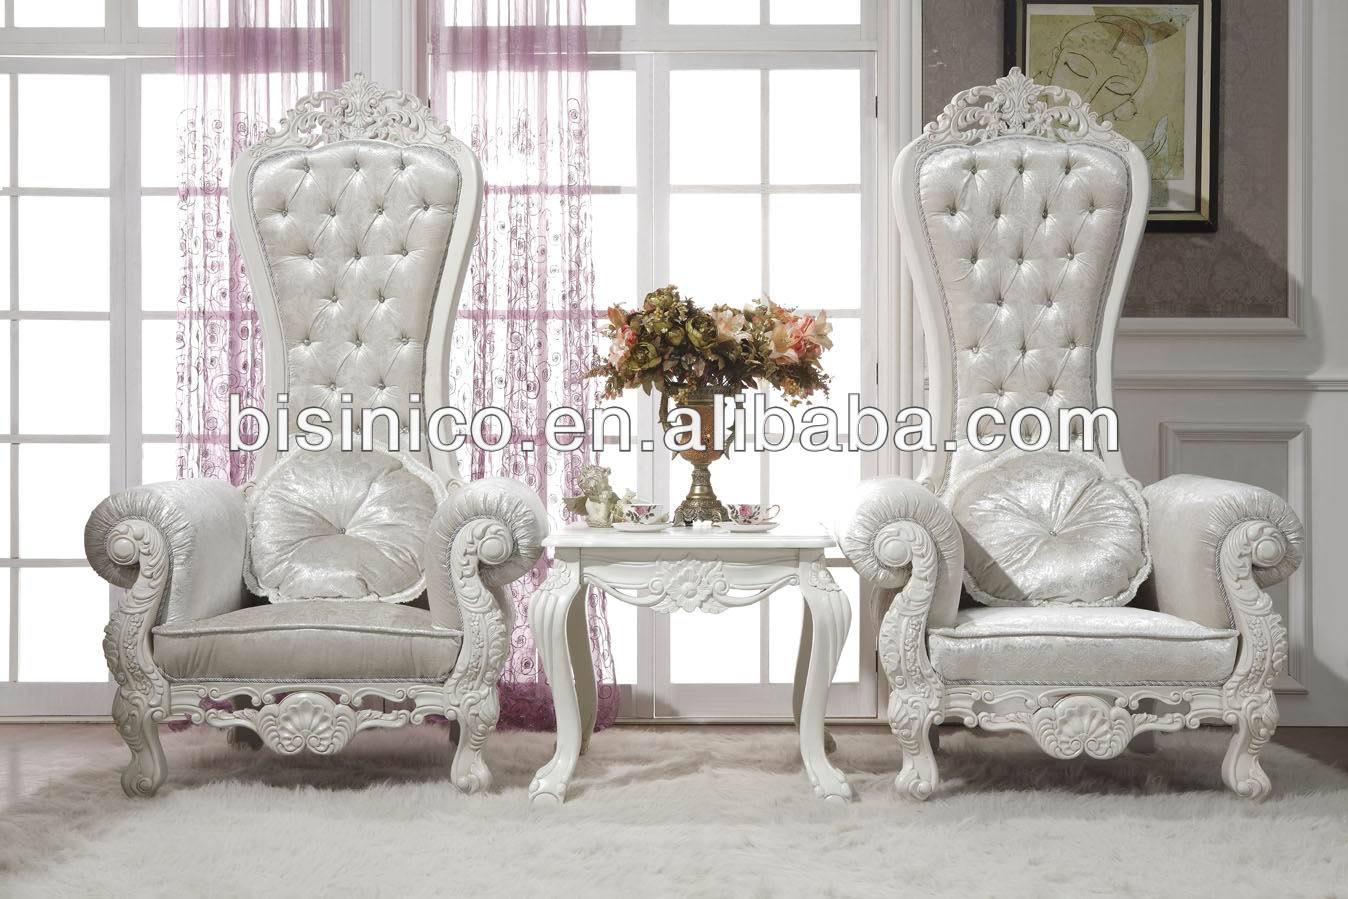 Queen anne living room chairs 2017 2018 best cars reviews Glamorous living room furniture